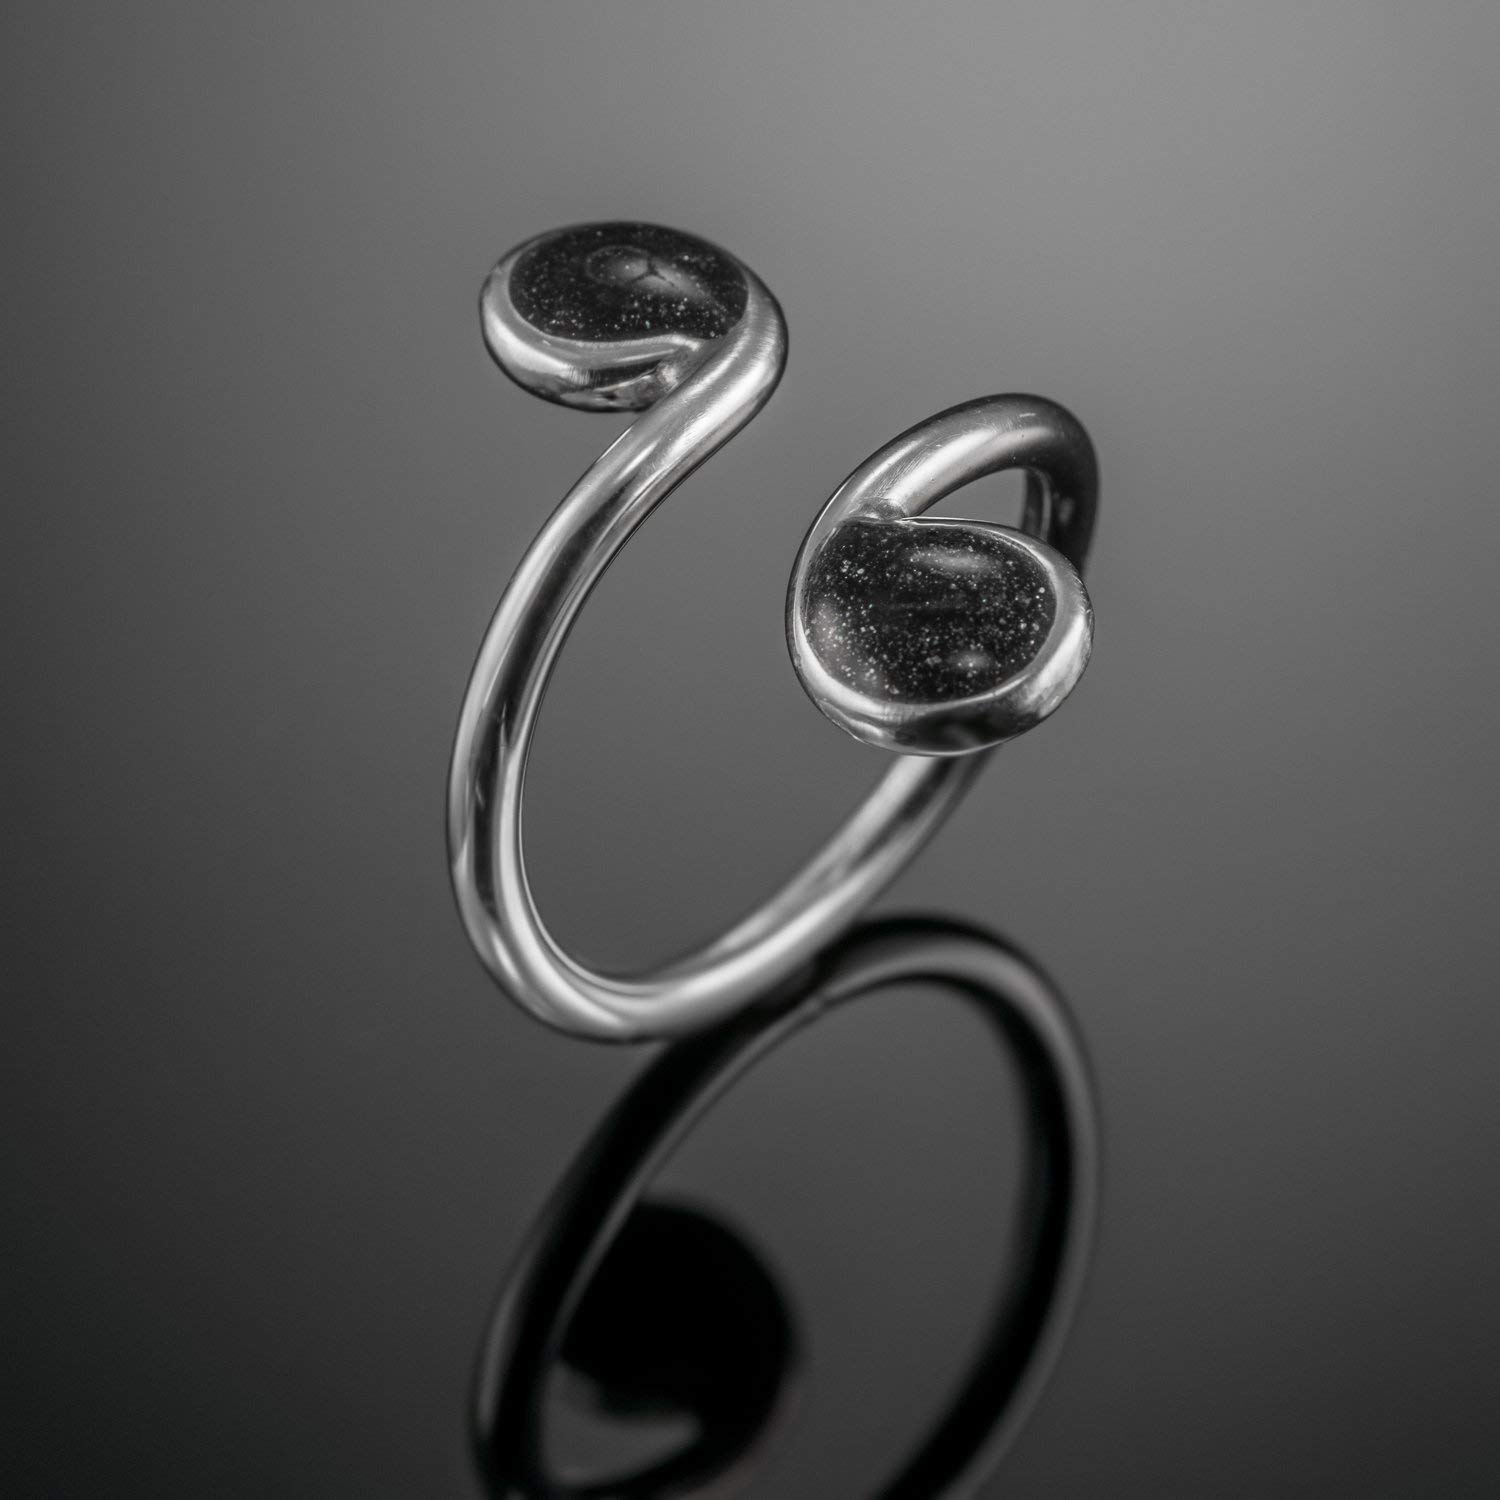 925 Silver Adjustable Open Ring, Unique Black sterling Silver Bohemian Band, Handmade Designer Jewelry